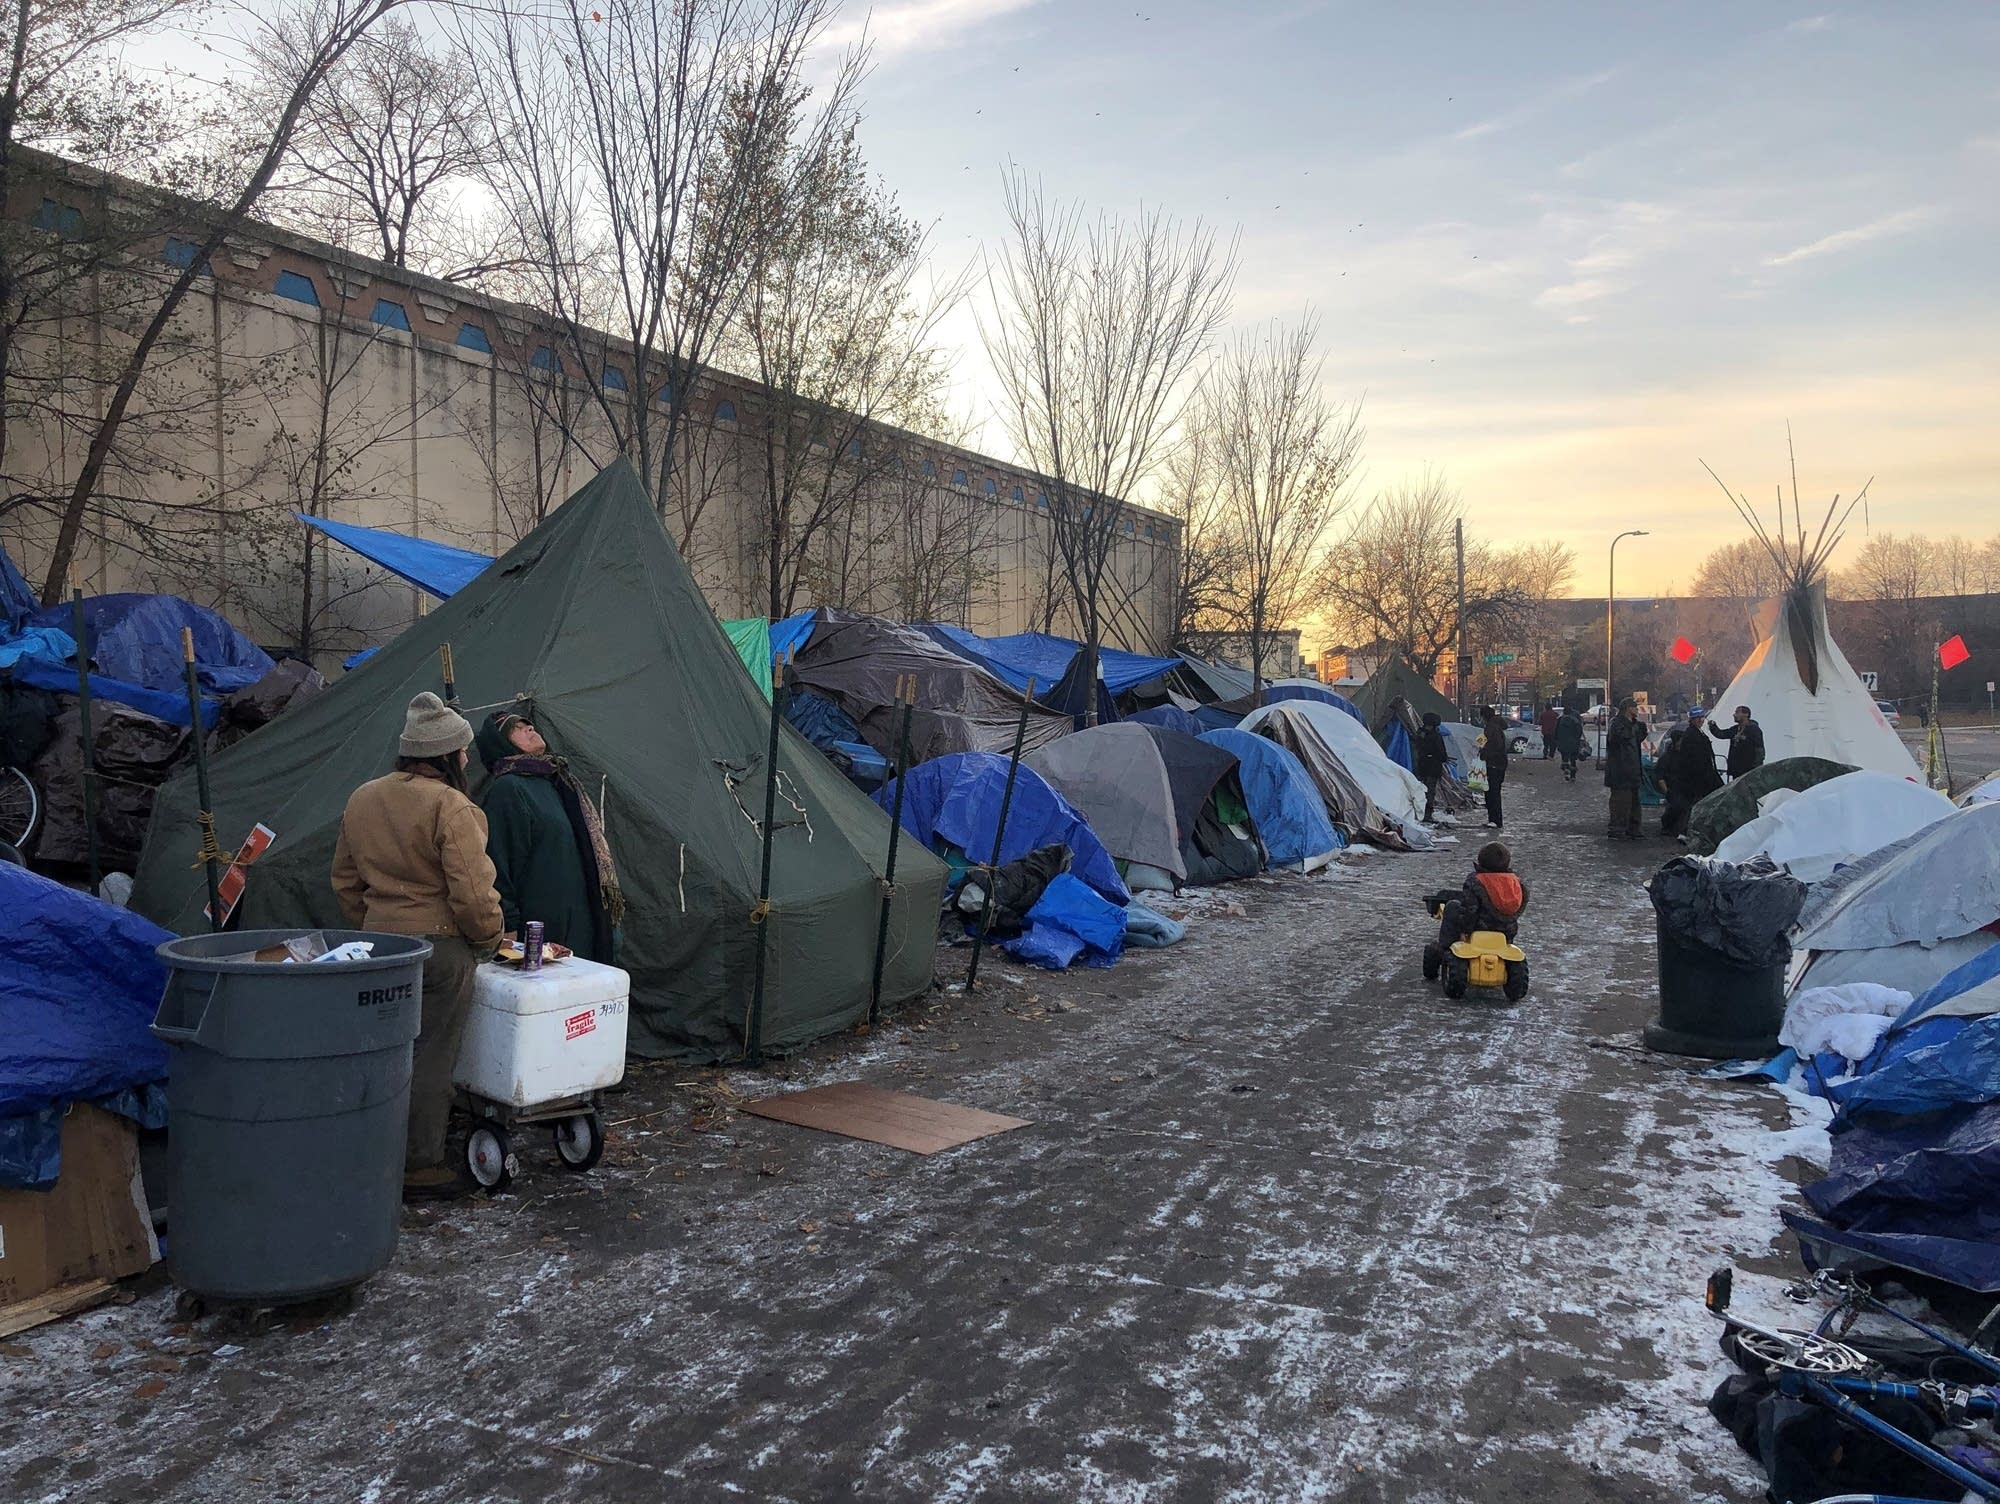 minneapolis plans to close homeless camp once emergency shelter